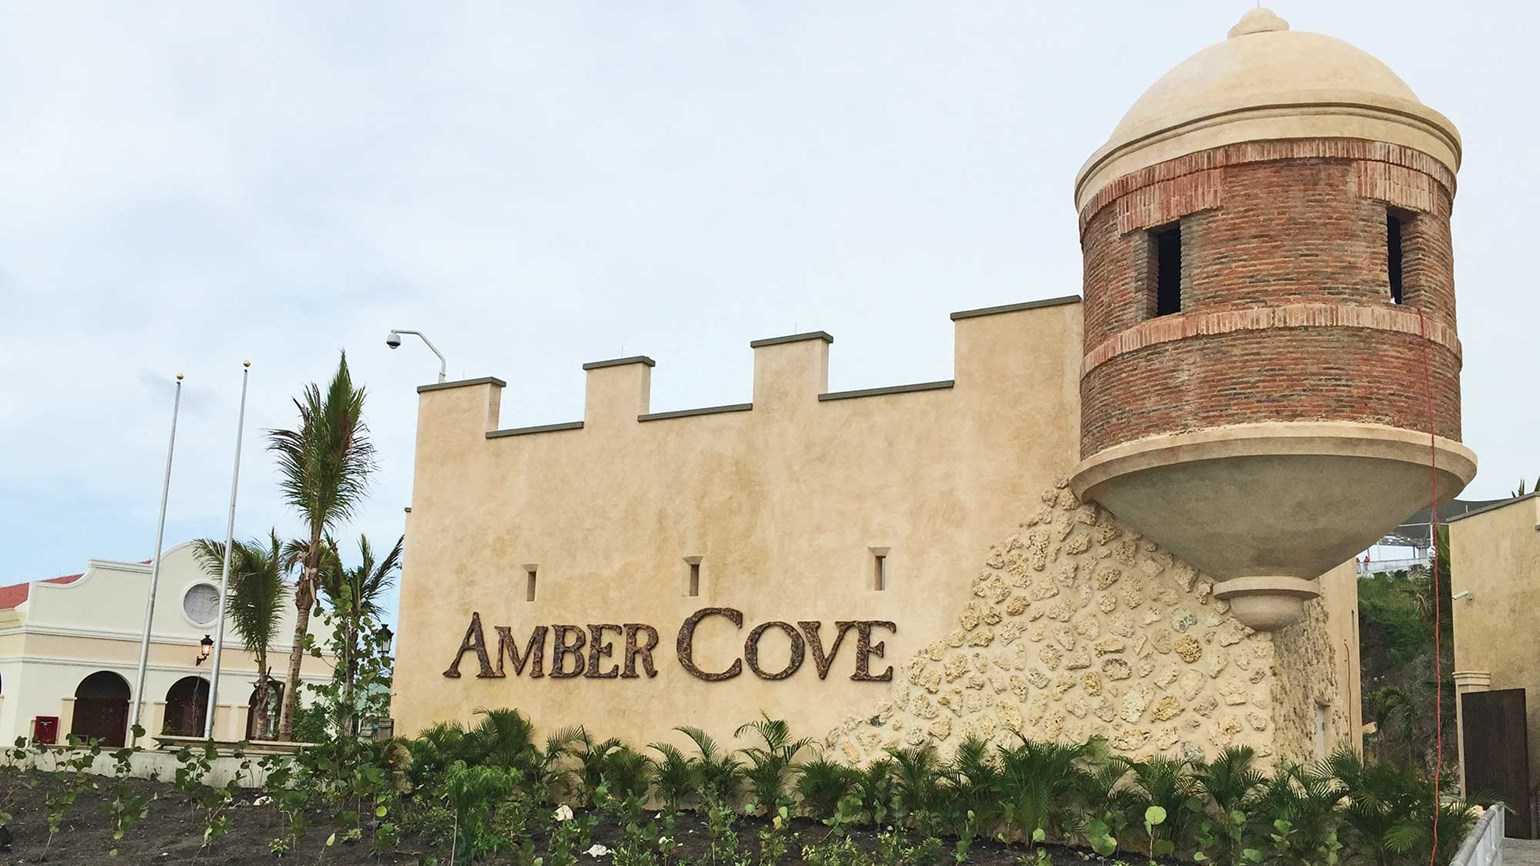 Amber Cove To Bring More Variety To Carnival S Caribbean